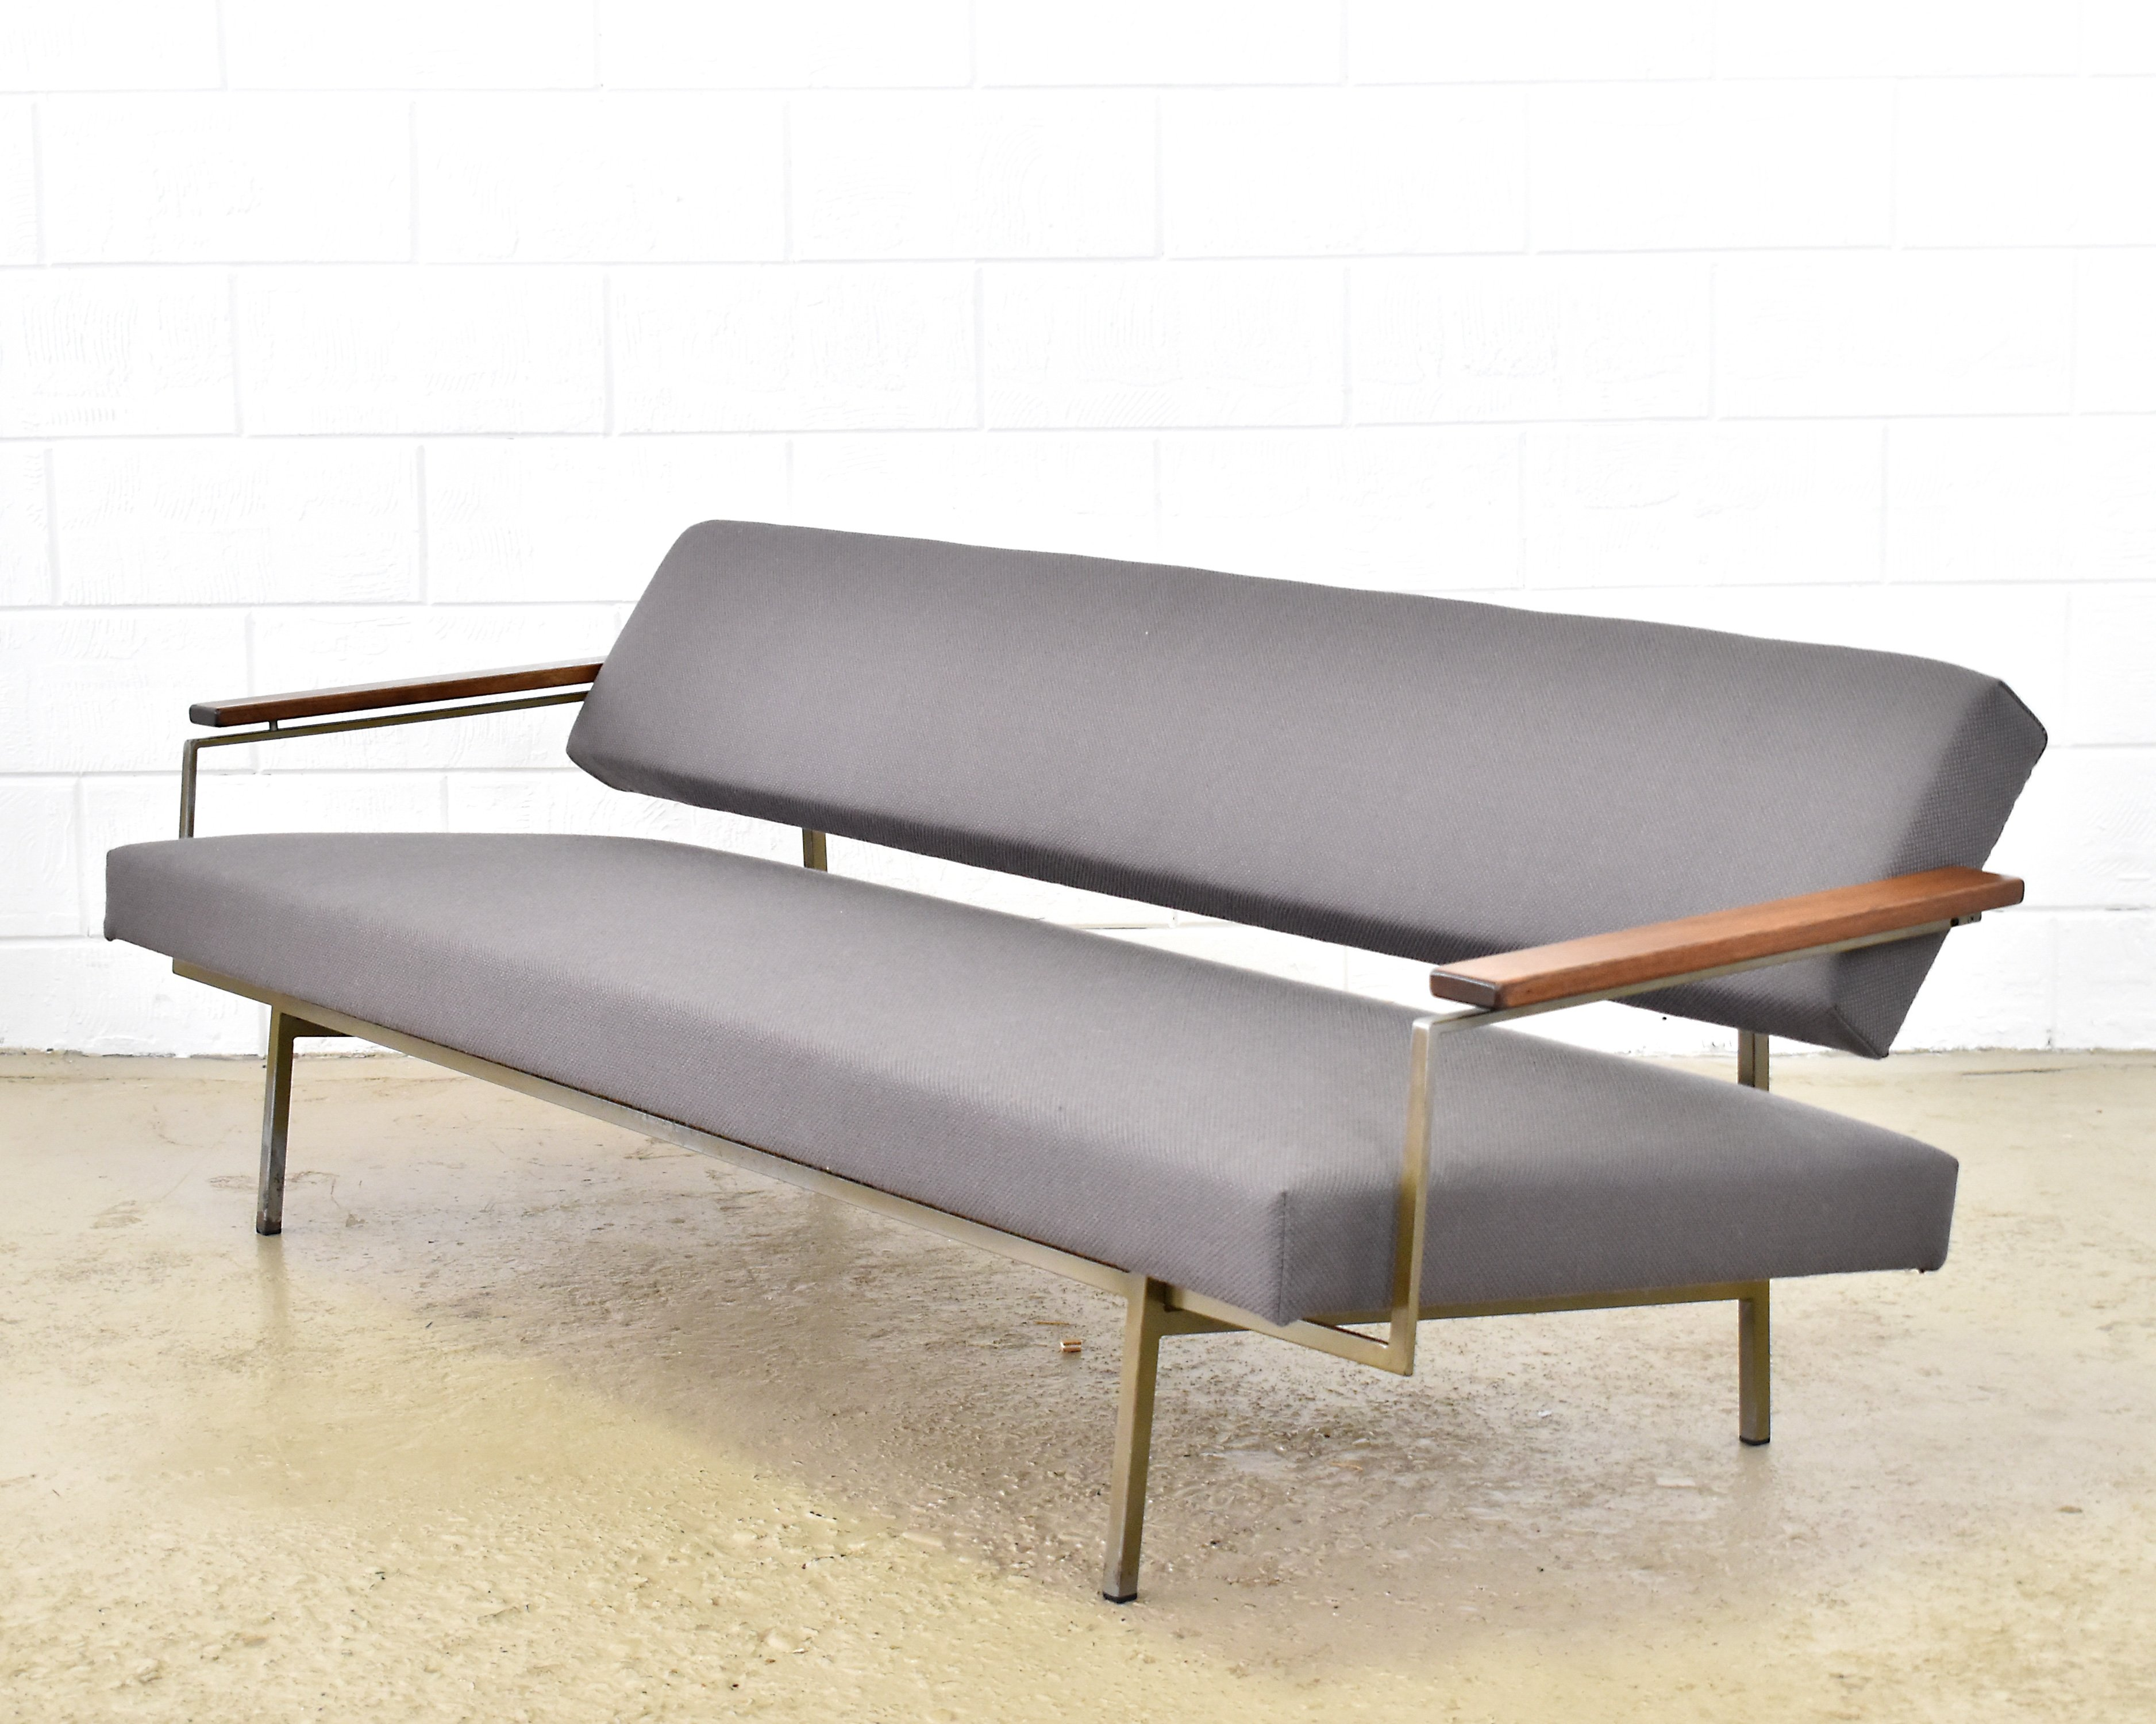 Surprising Lotus 75 Sofa By Rob Parry For Gelderland 1960S 70014 Andrewgaddart Wooden Chair Designs For Living Room Andrewgaddartcom